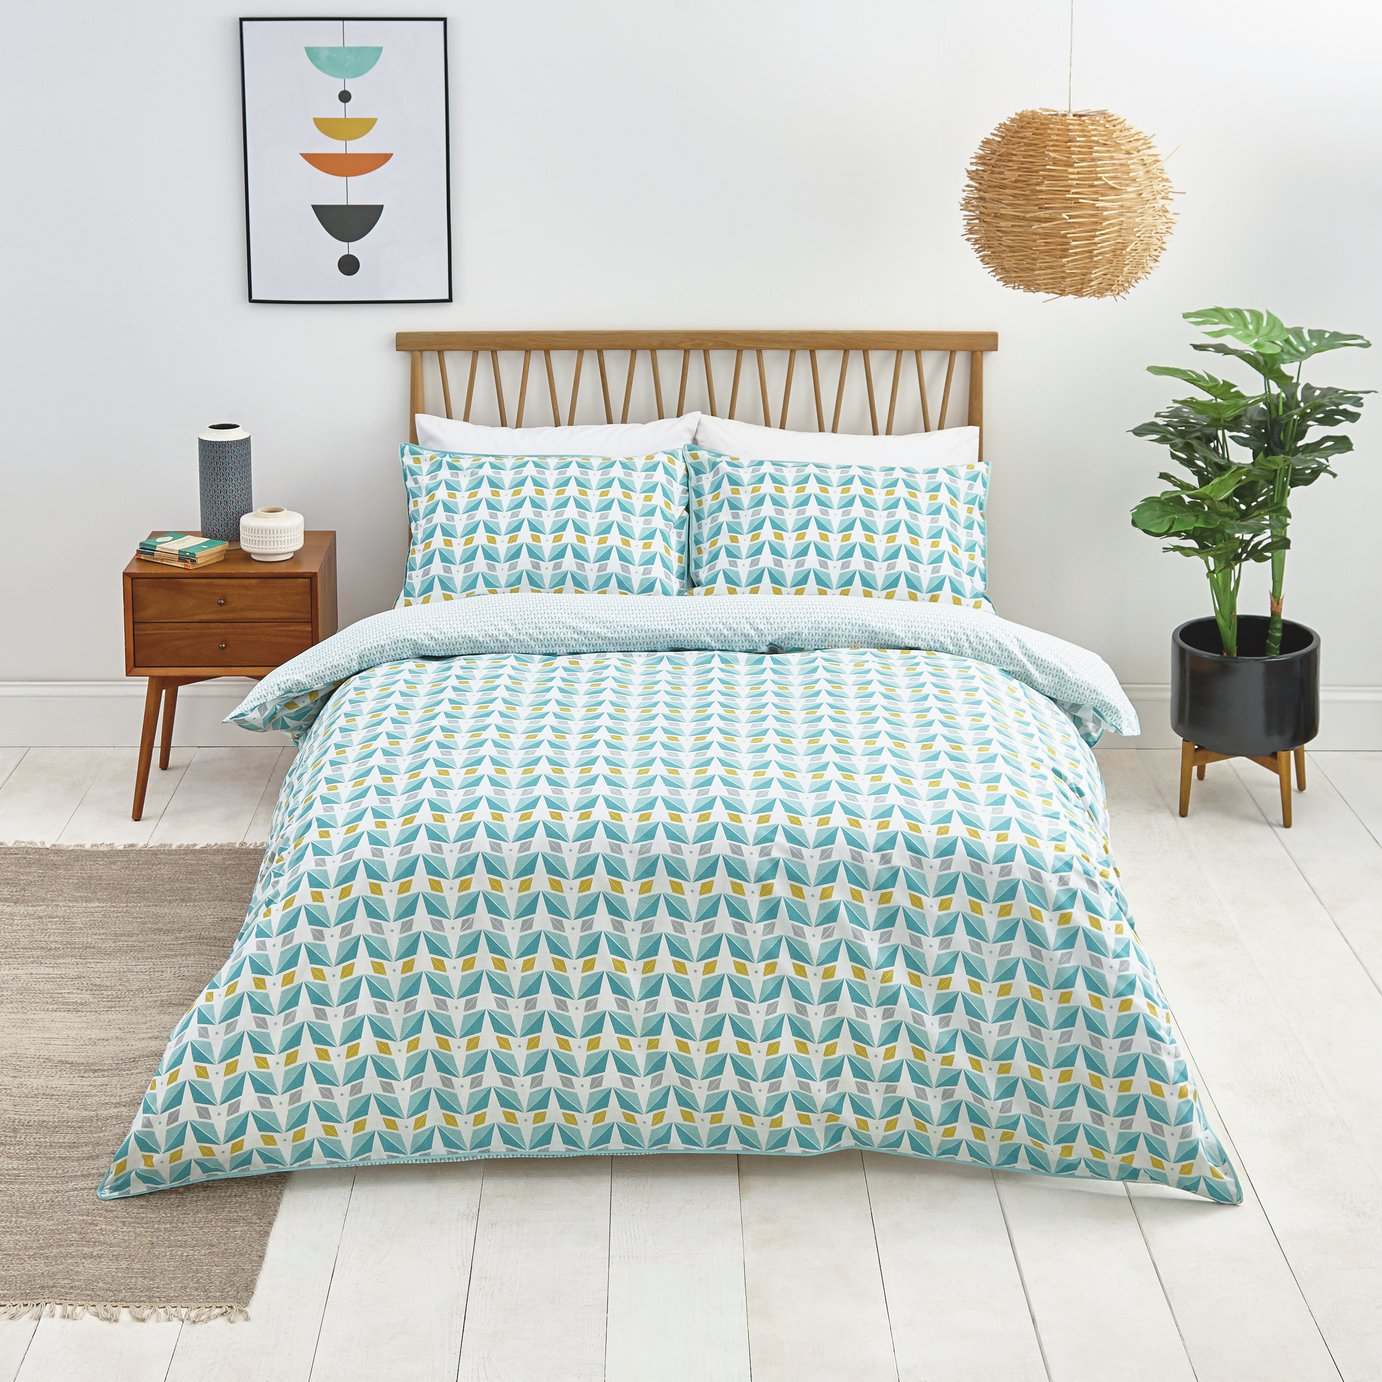 Sainsbury's Home Newstalgia Retro Bedding Set - Single